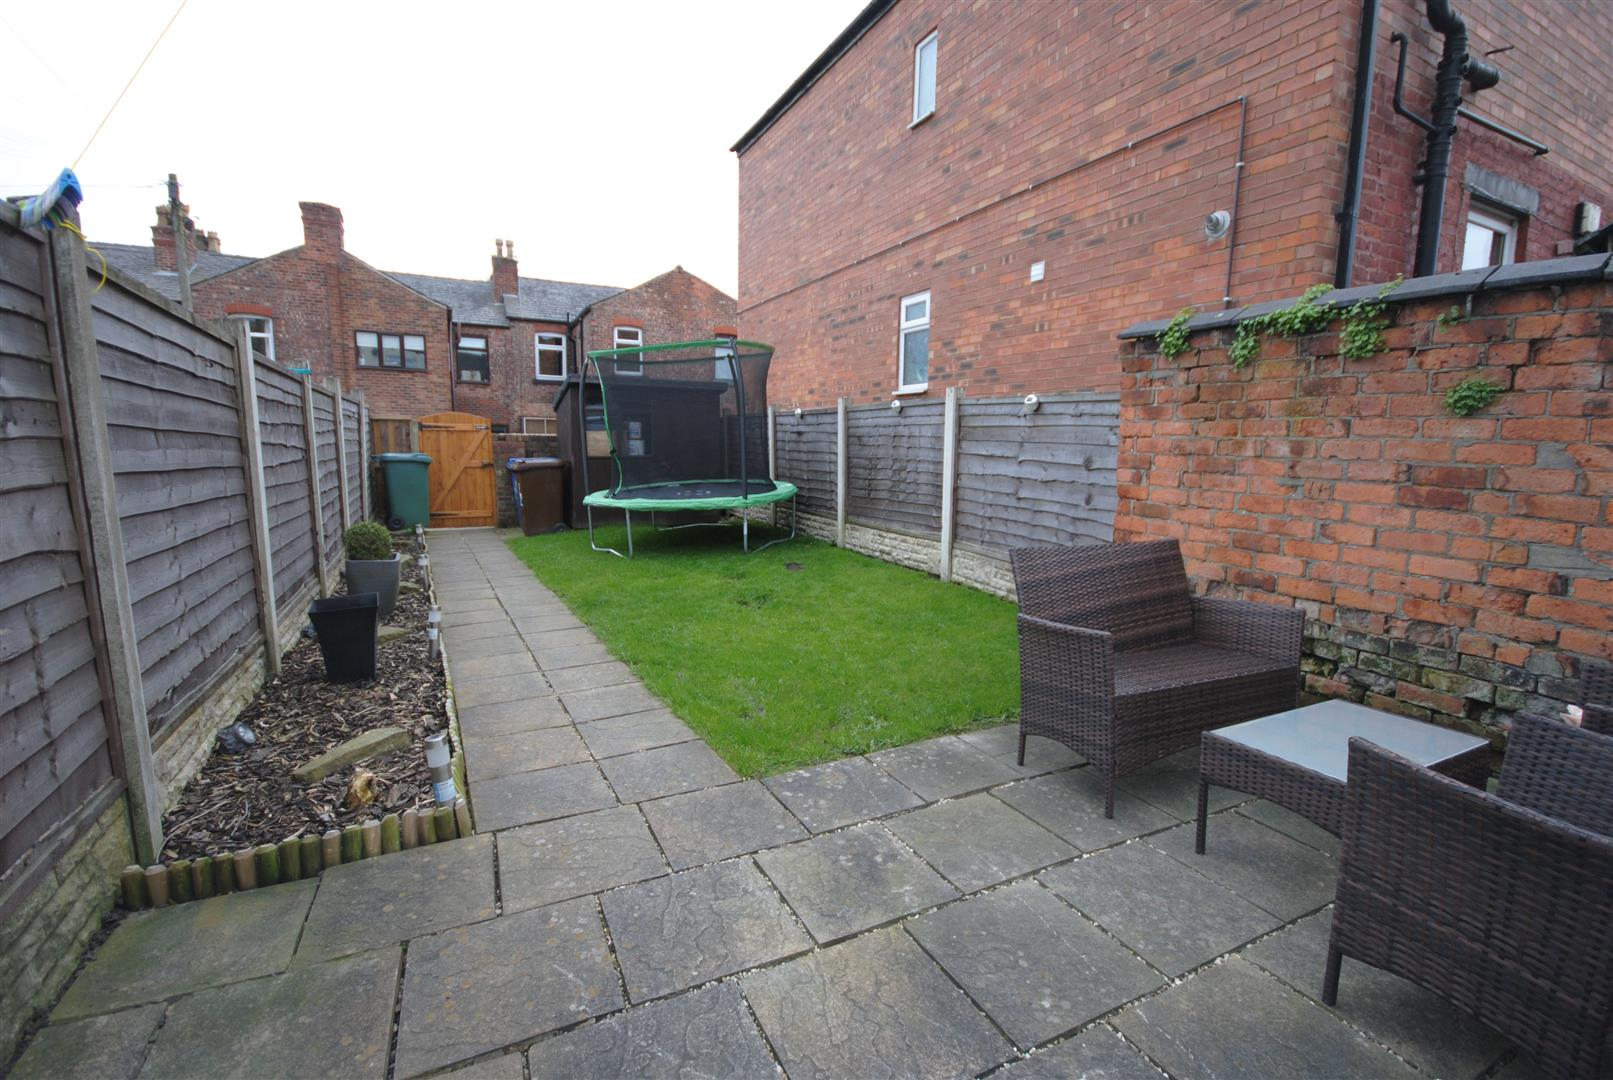 3 Bedrooms Terraced House for sale in Rylands Street, Wigan